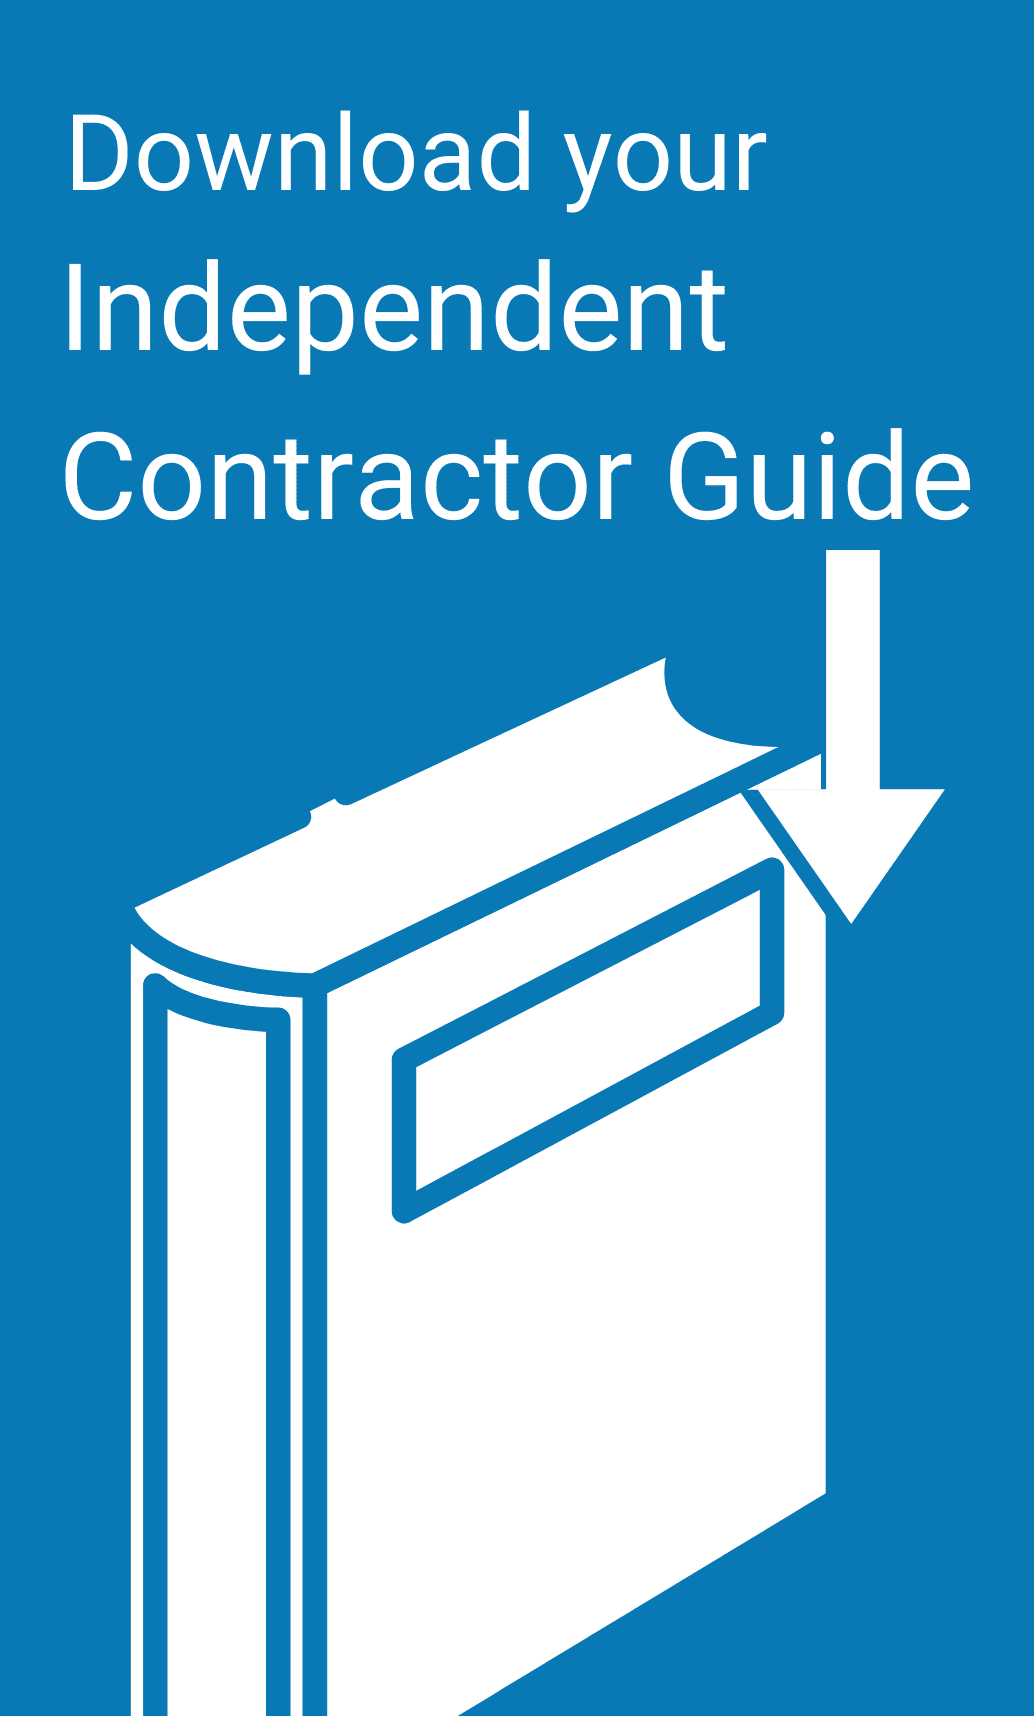 Download your Independent Contractor Guidelines